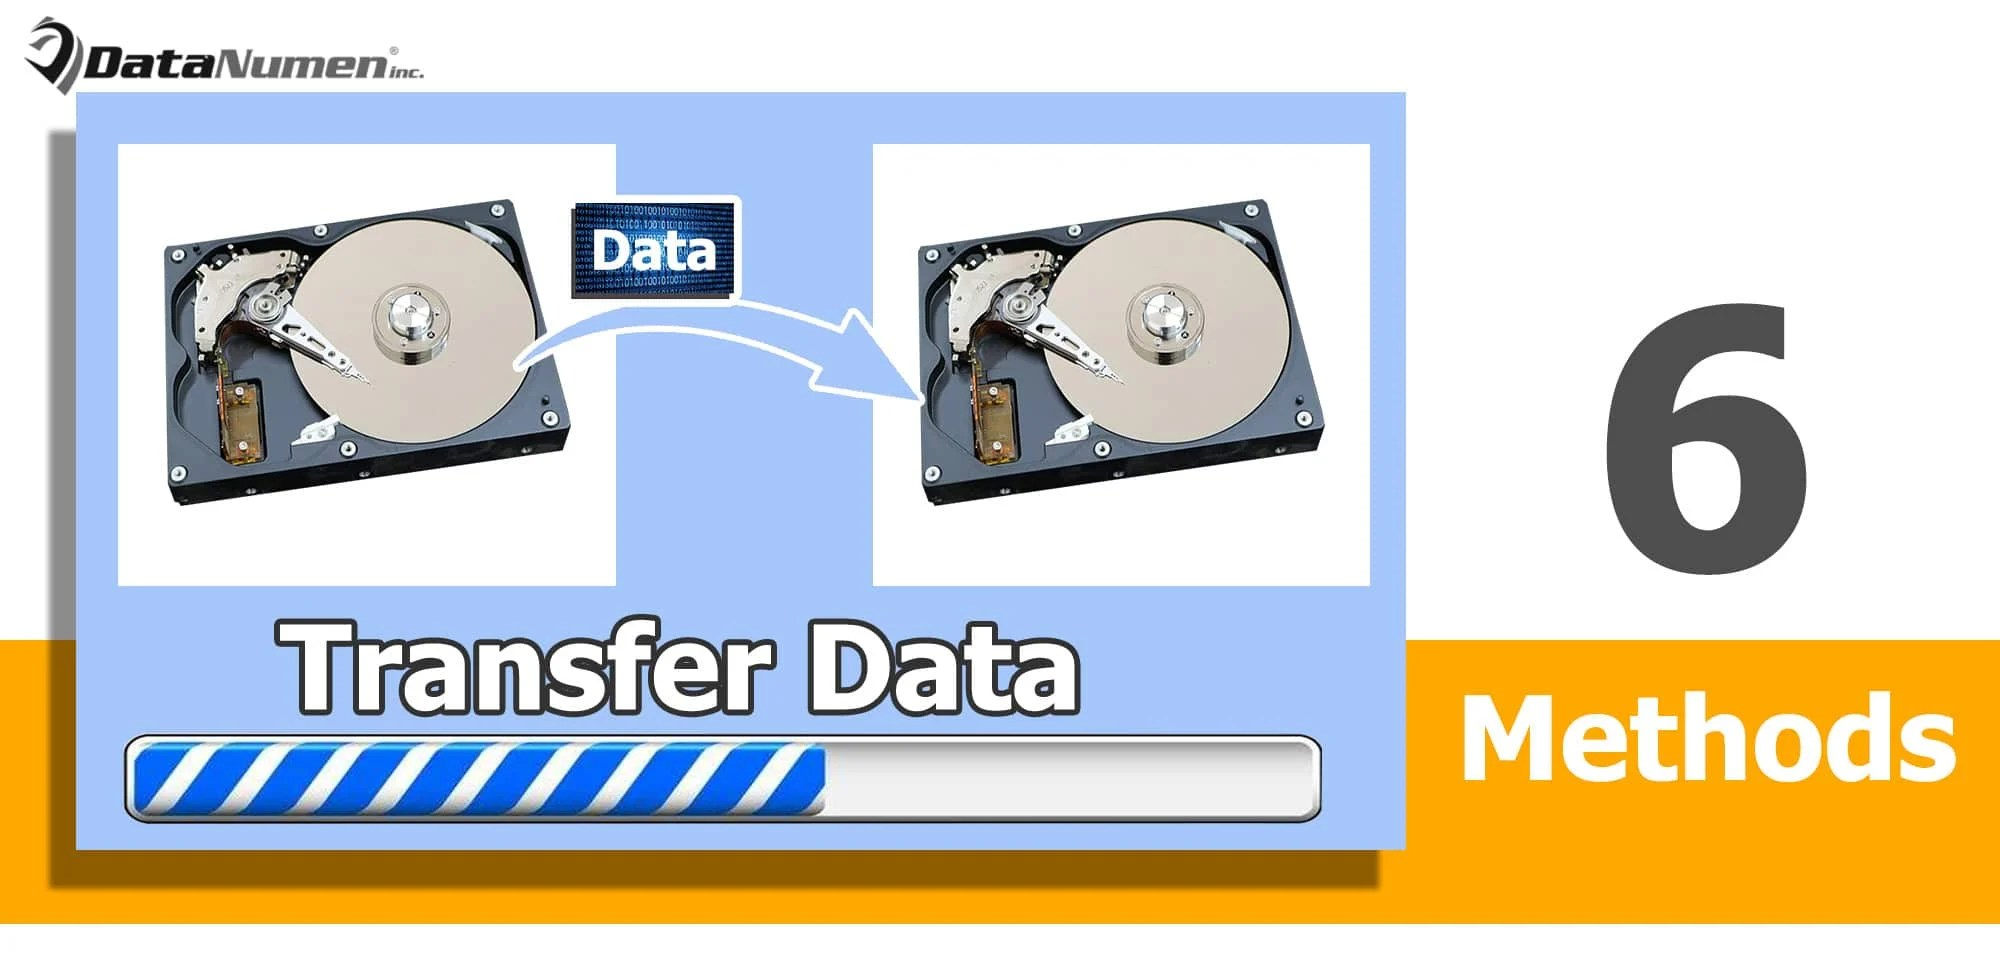 6 Easy Methods to Transfer Data from One Hard Drive to Another